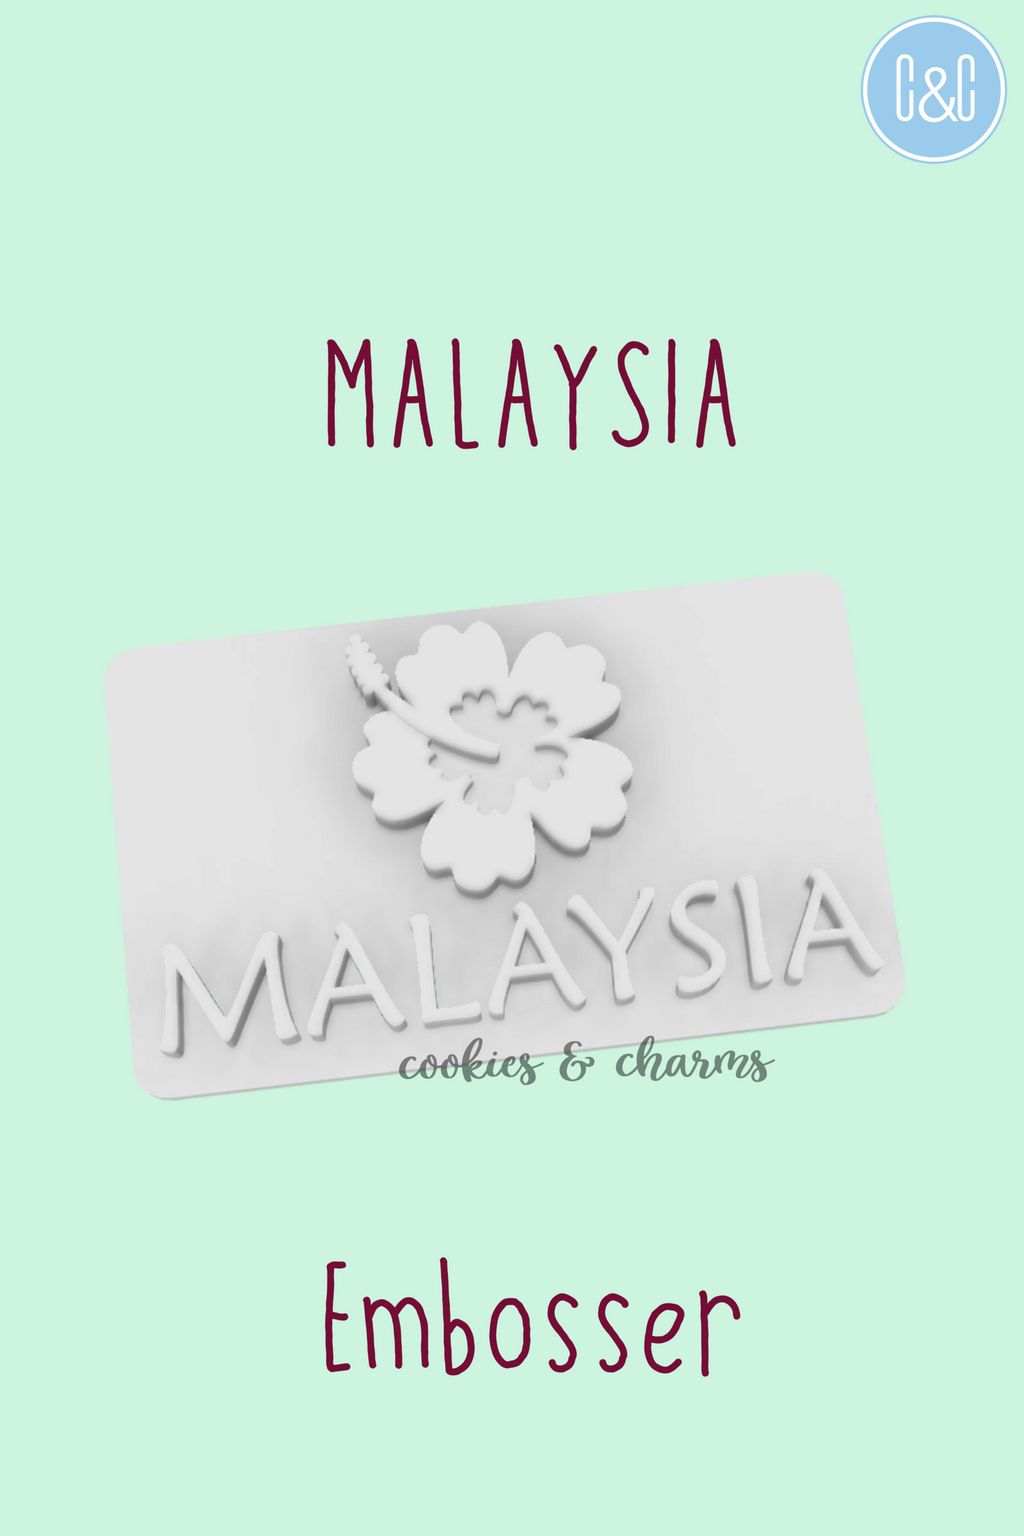 Malaysia cookie embosser.png